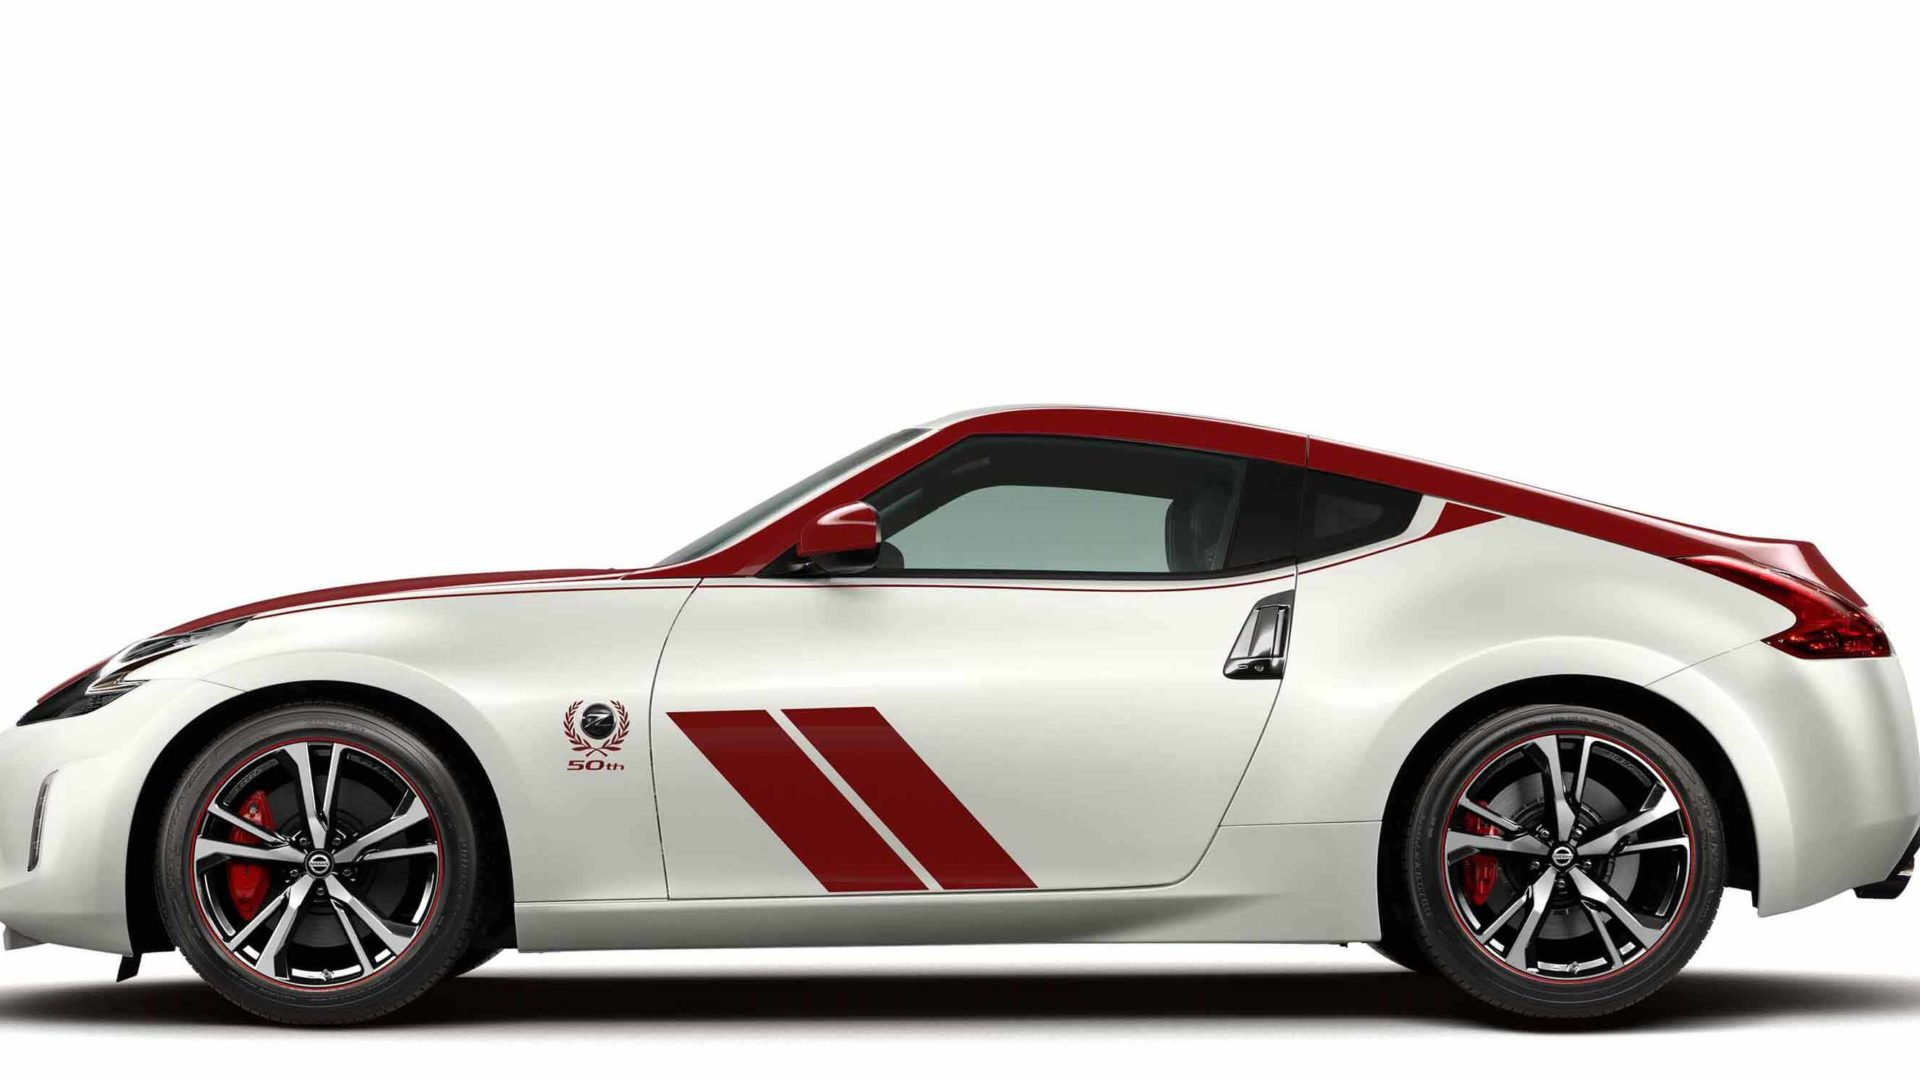 370z-50th-anniversary-side-profile-3000x1500